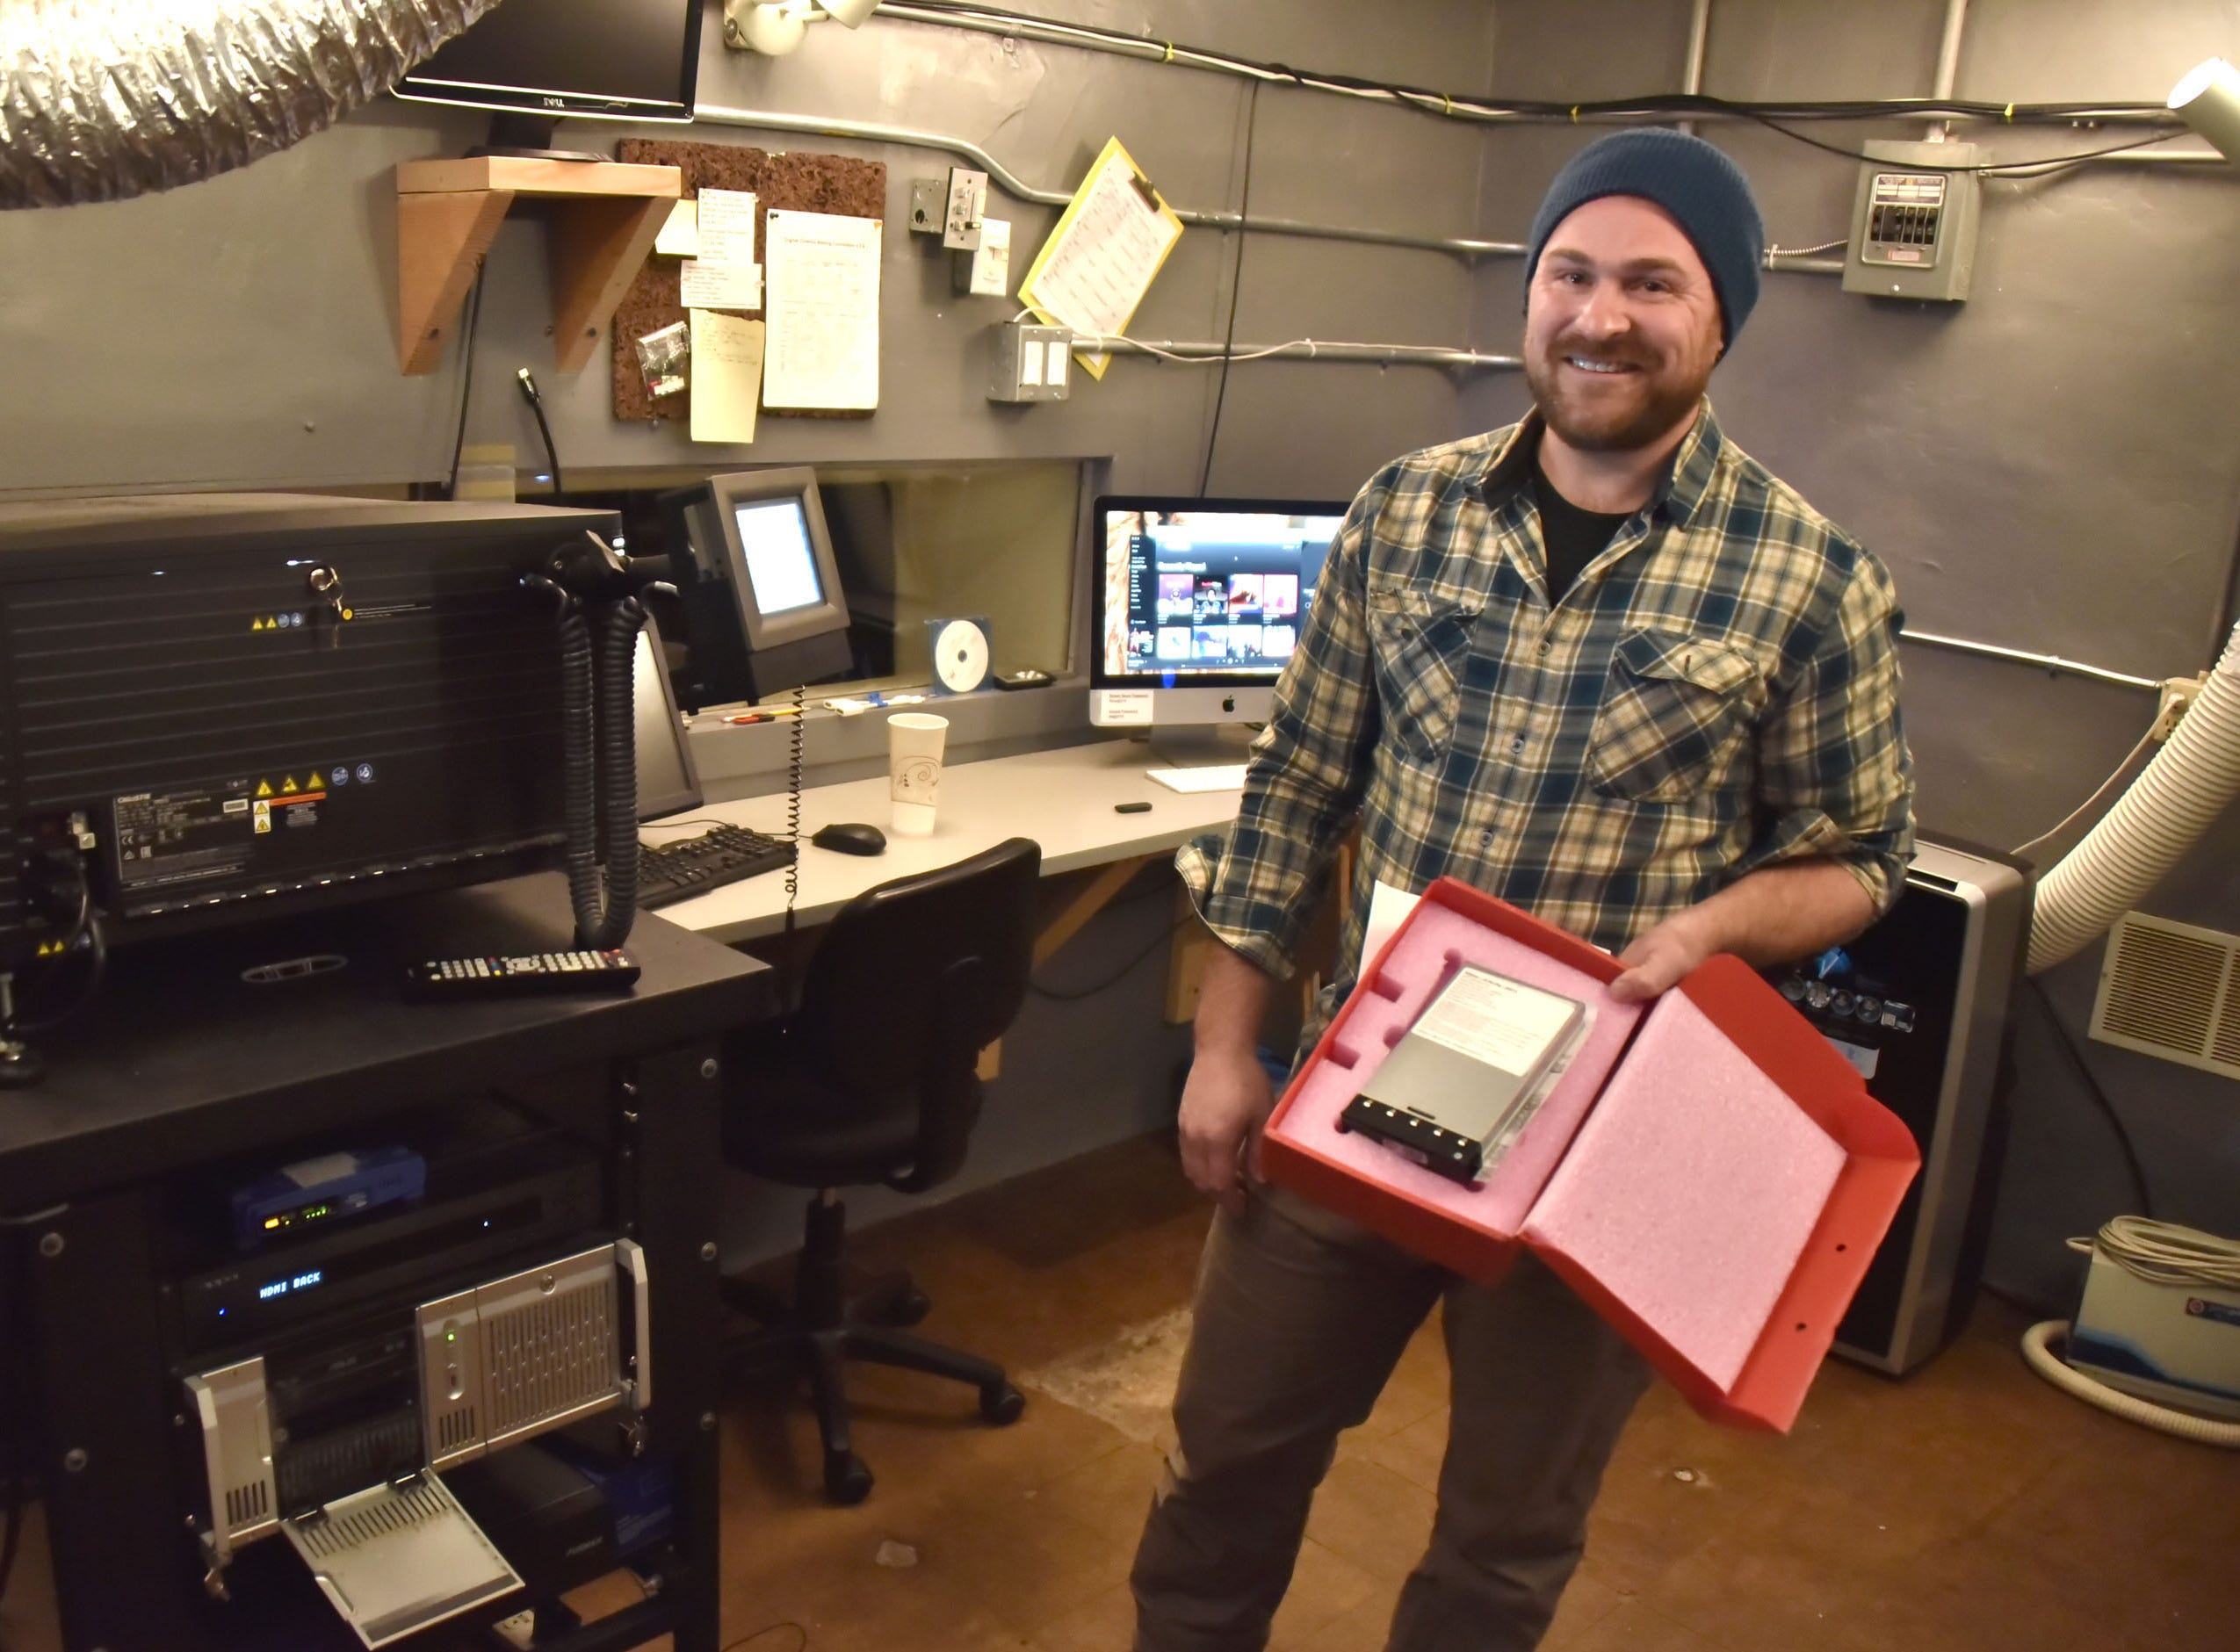 Erik Bahle, manager of the 200-seat Bay theater in Suttons Bay, Michigan holds a digital hard drive which contains a movie, replacing the old 35-mm film that was used to show movies.